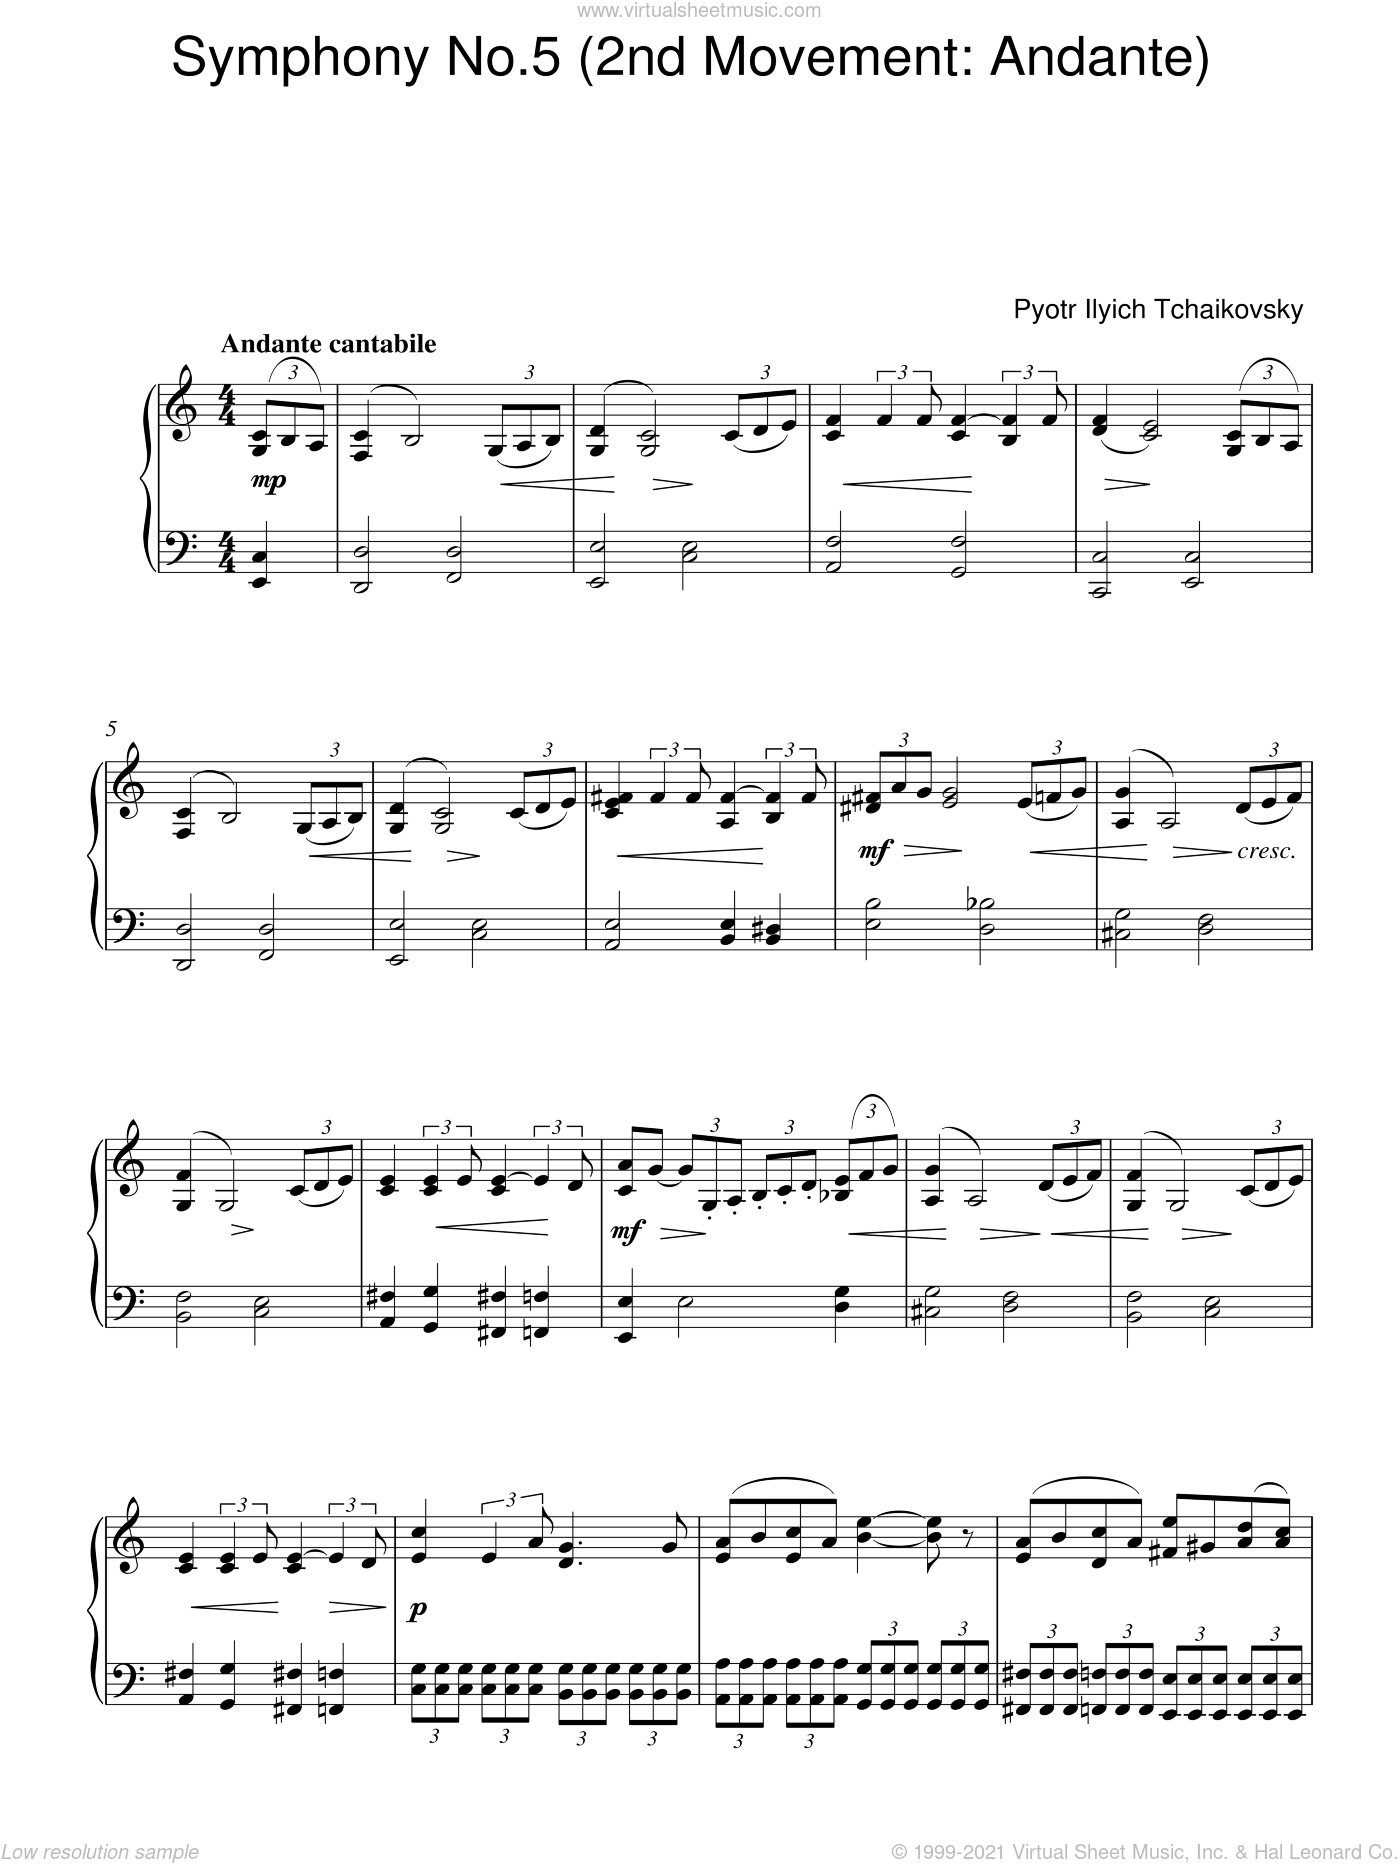 Symphony No. 5 (2nd Movement: Andante) sheet music for piano solo by Pyotr Ilyich Tchaikovsky